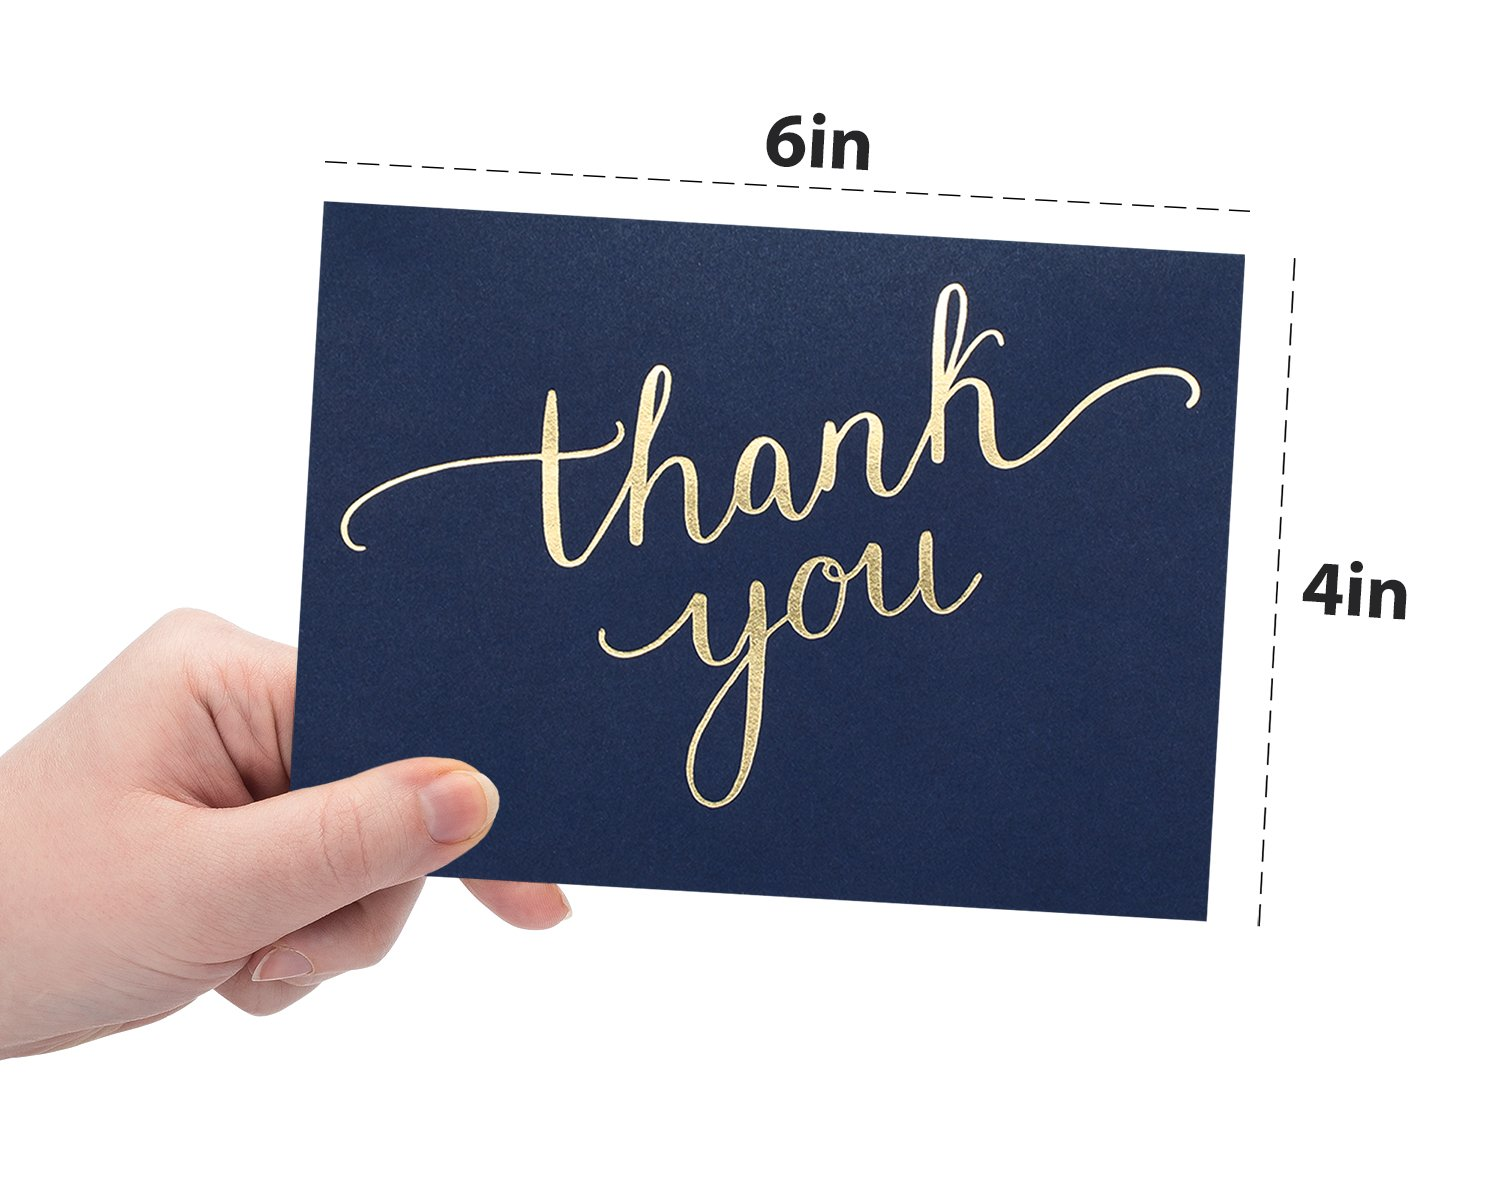 100 Thank You Cards Bulk - Thank You Notes, Navy Blue & Gold - Blank Note Cards with Envelopes - Perfect for Business, Wedding, Gift Cards, Graduation, Baby Shower, Funeral - 4x6 Photo Size by Spark Ink (Image #6)